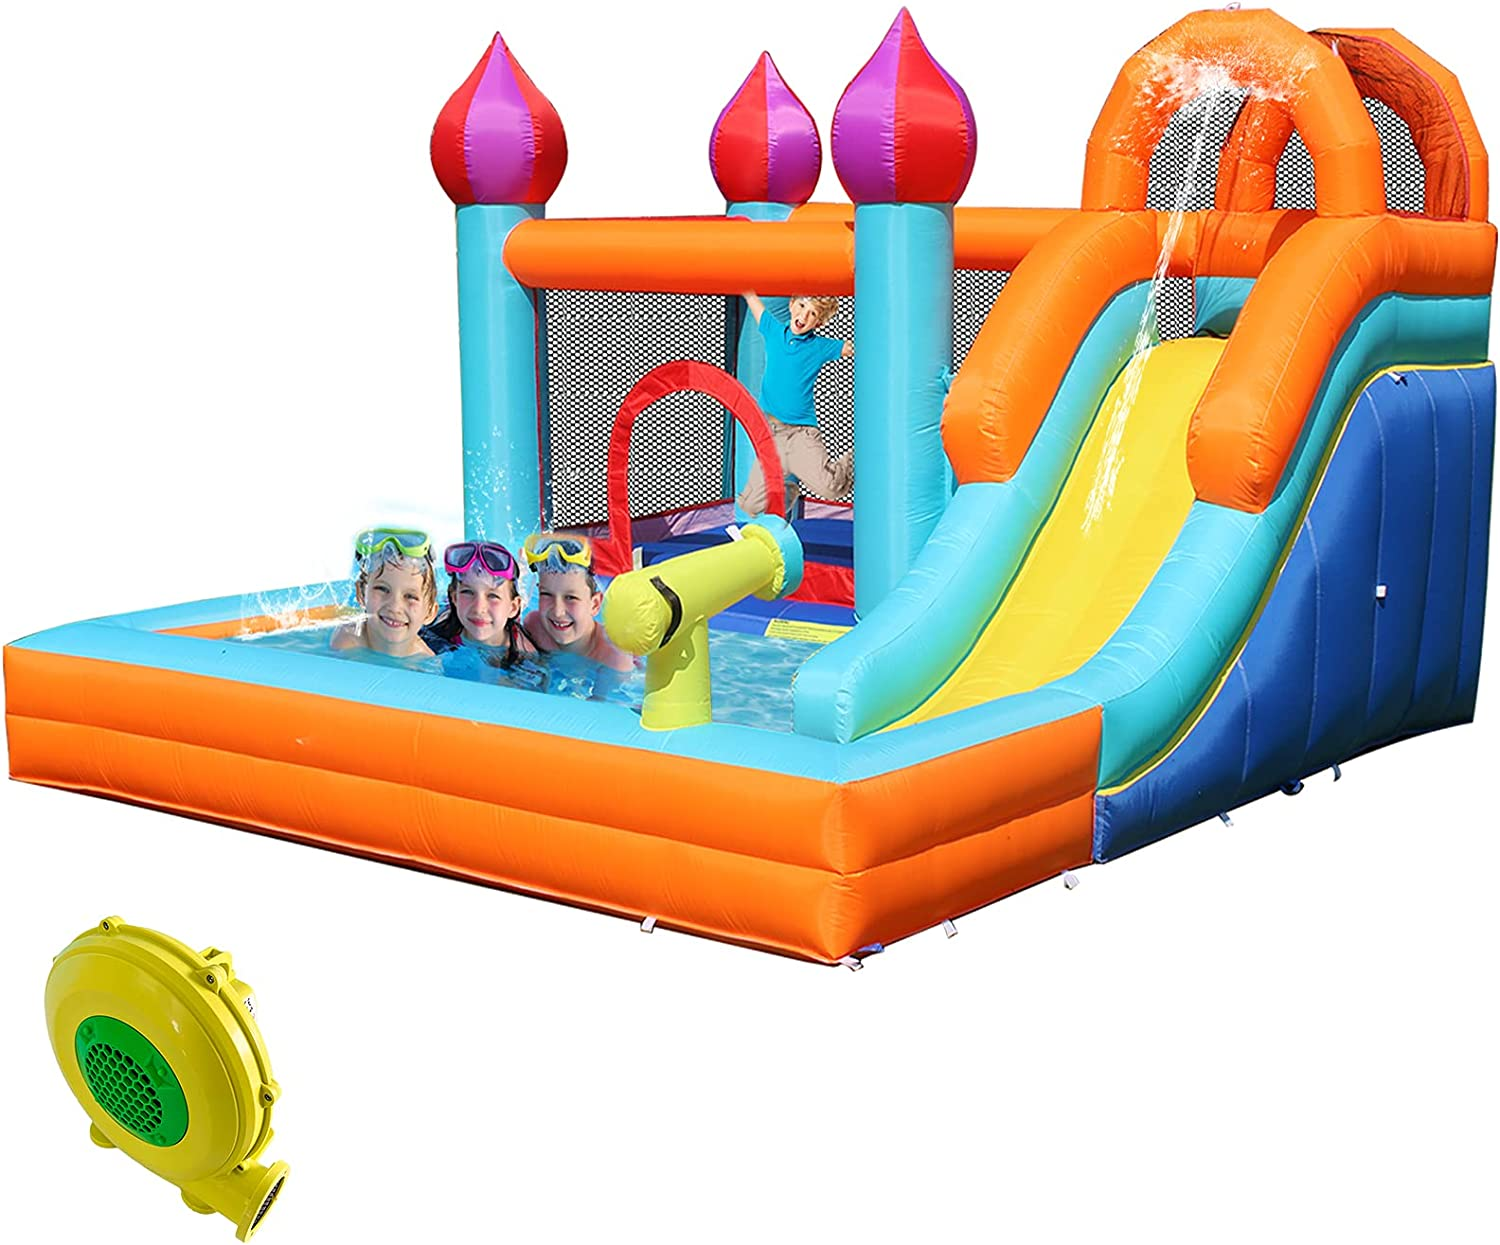 HIJOFUN Inflatable Water Slide Kids House Max Max 72% OFF 66% OFF for Bounce Backyard